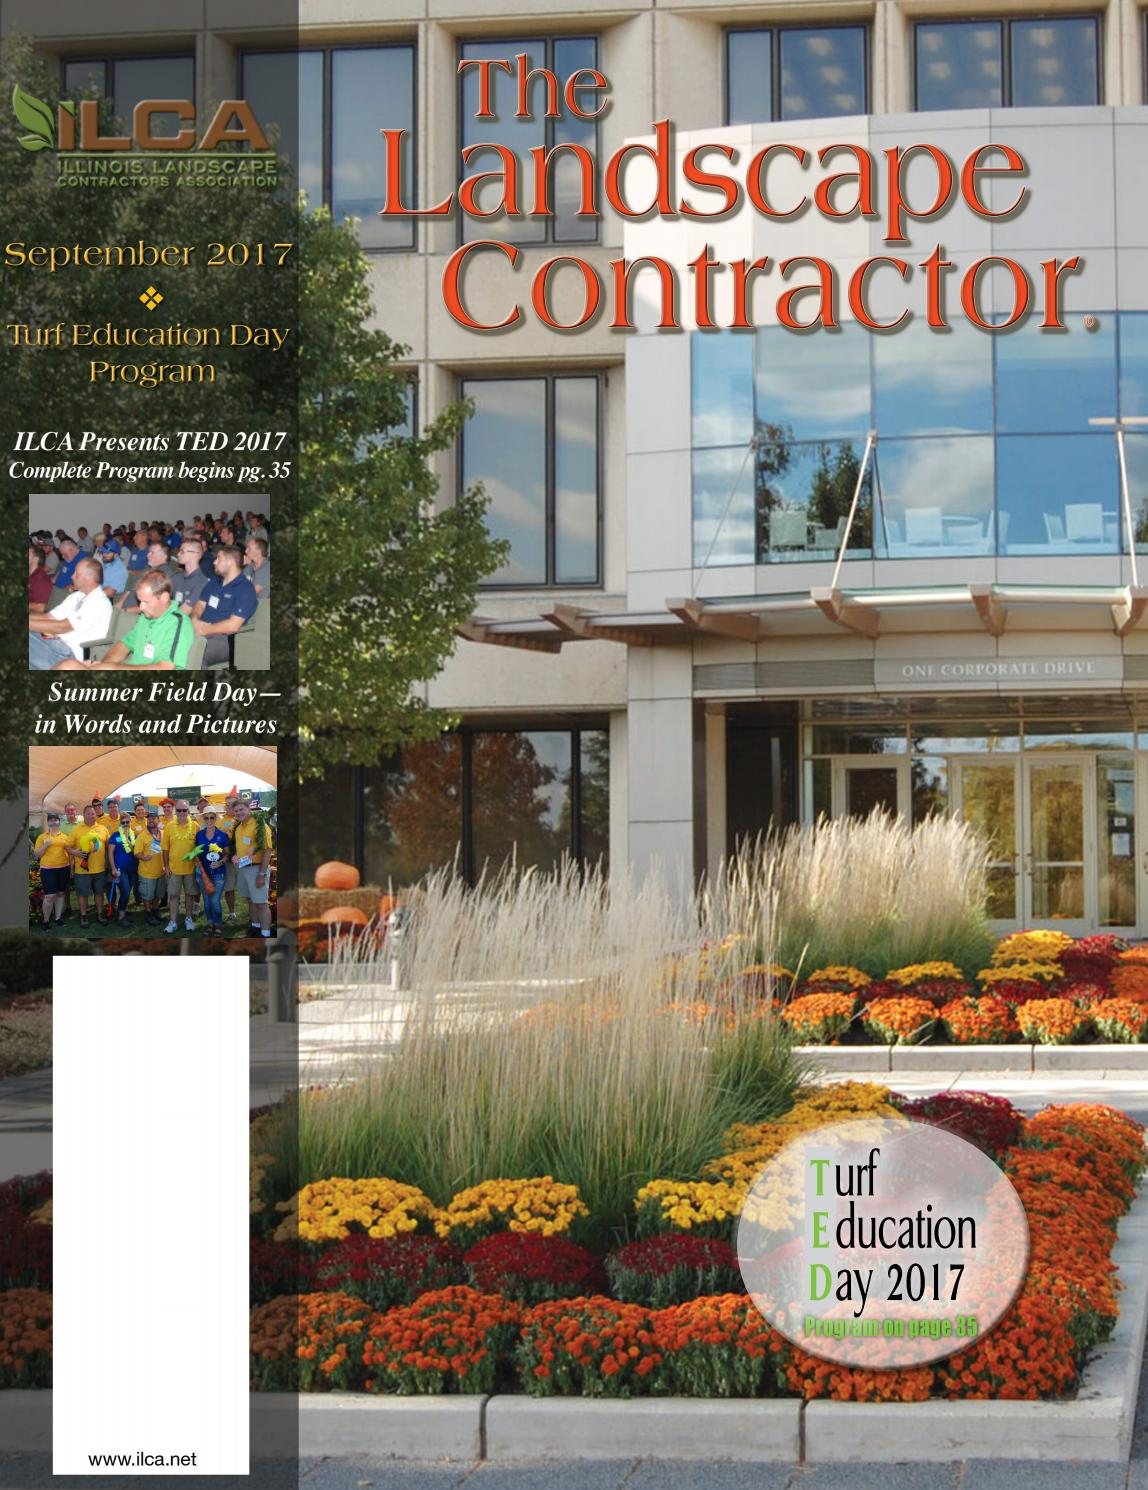 Midwestlandscape Garden Design: The Landscape Contractor Magazine September 2017 Digital